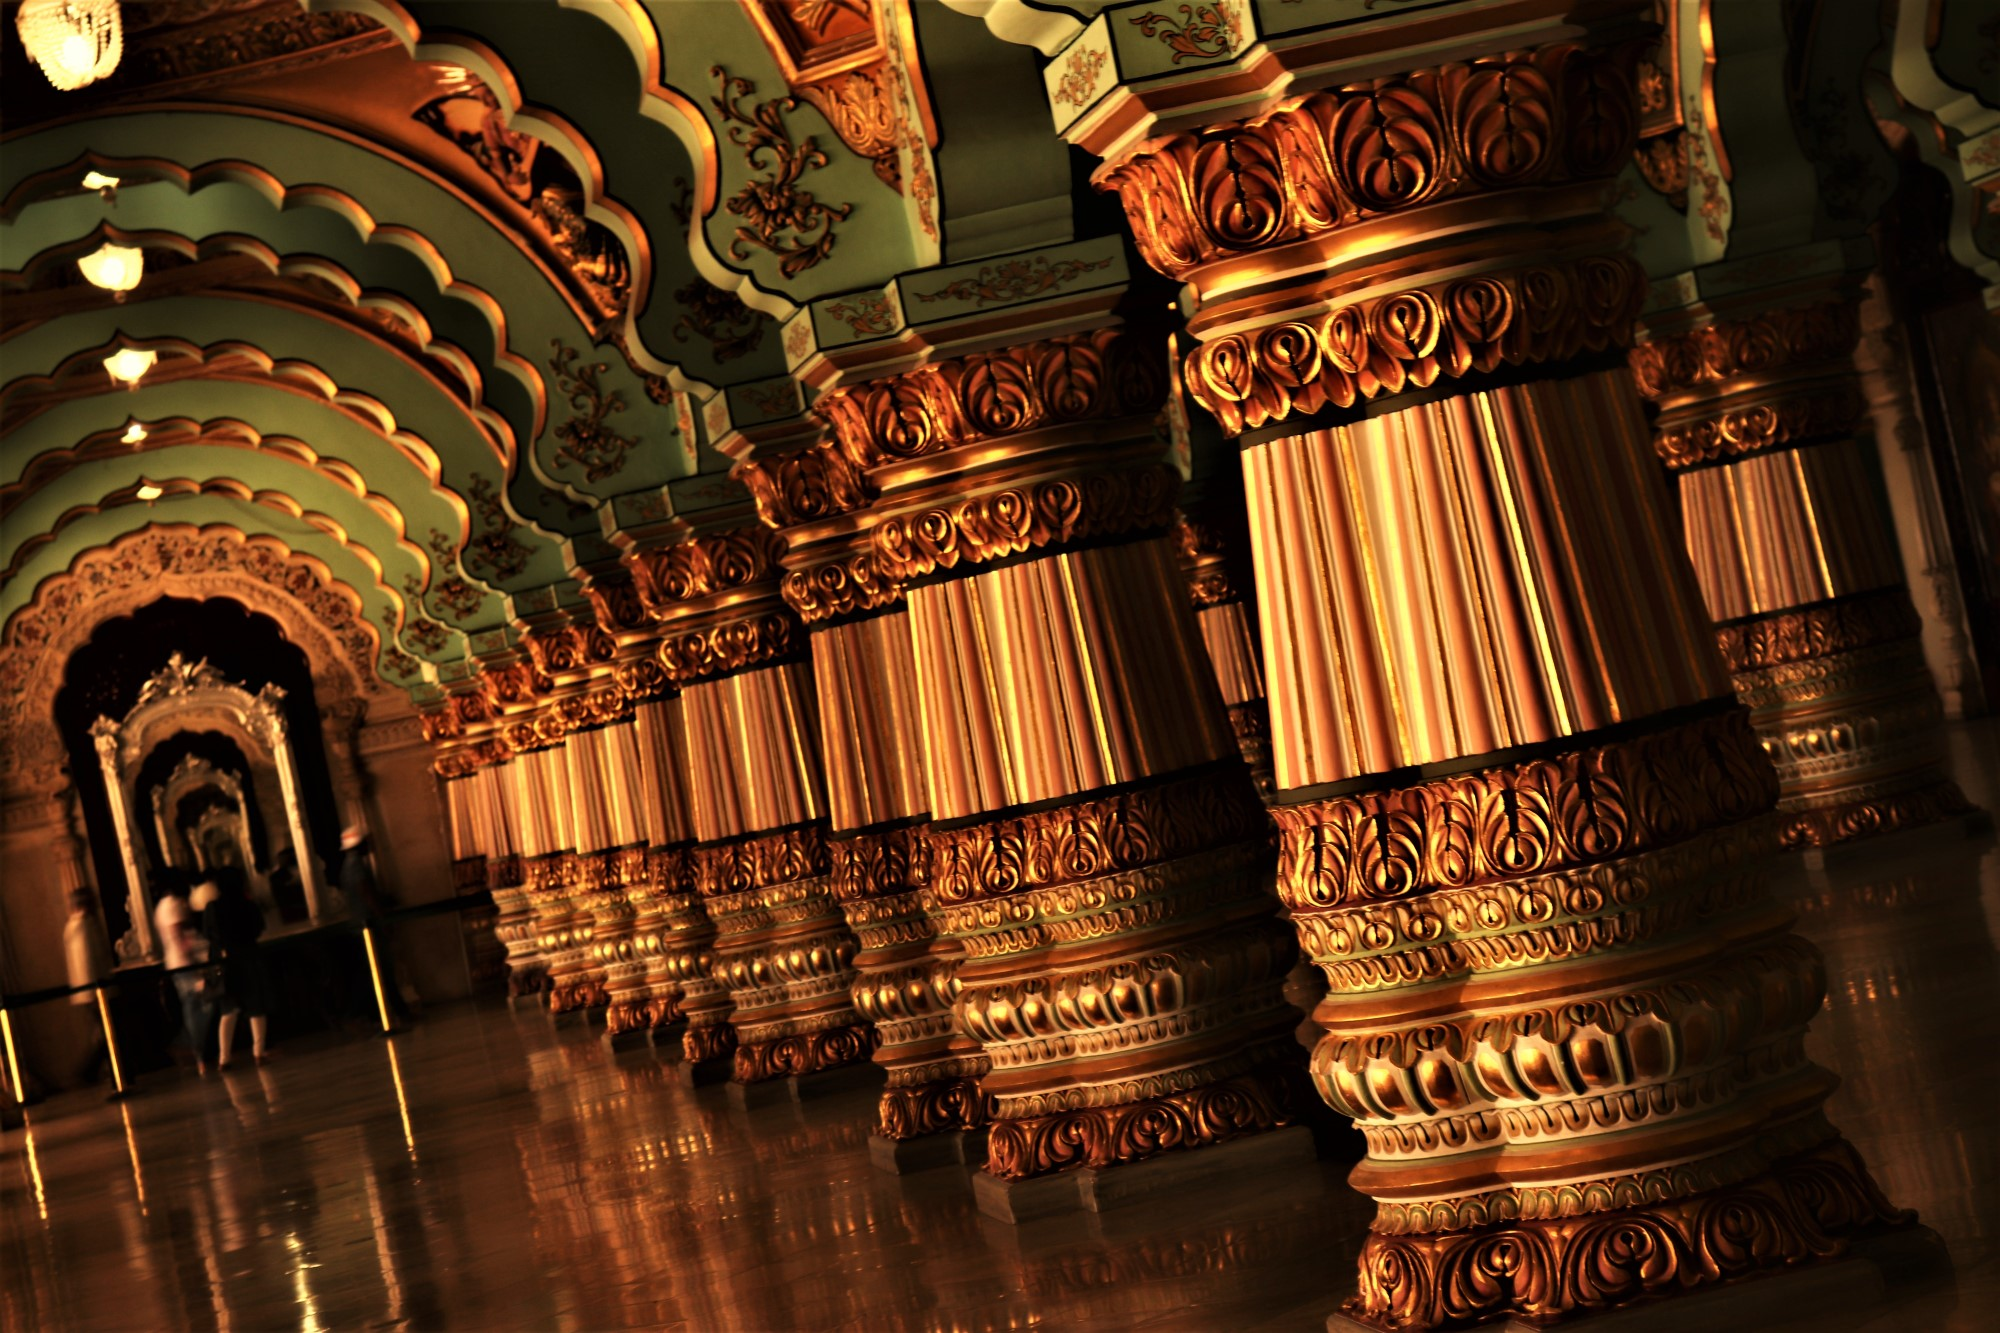 The beautiful Public Durbar hall in the iconic Mysore Palace.